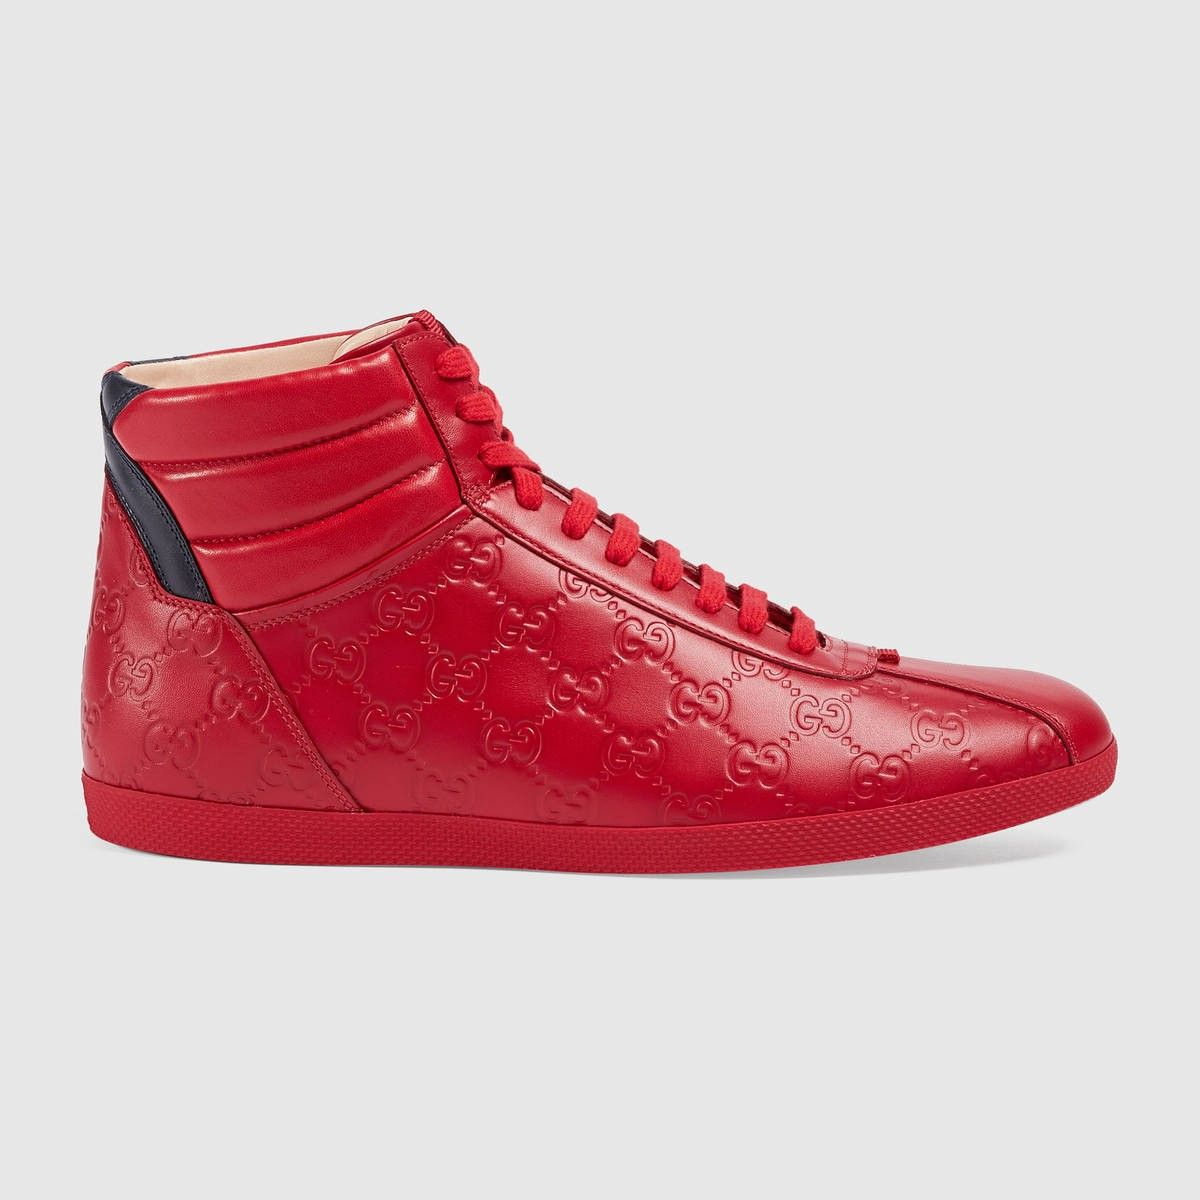 GUCCI Gucci Signature High-Top Sneaker - Hibiscus Red Gucci Signature. # gucci #shoes #all